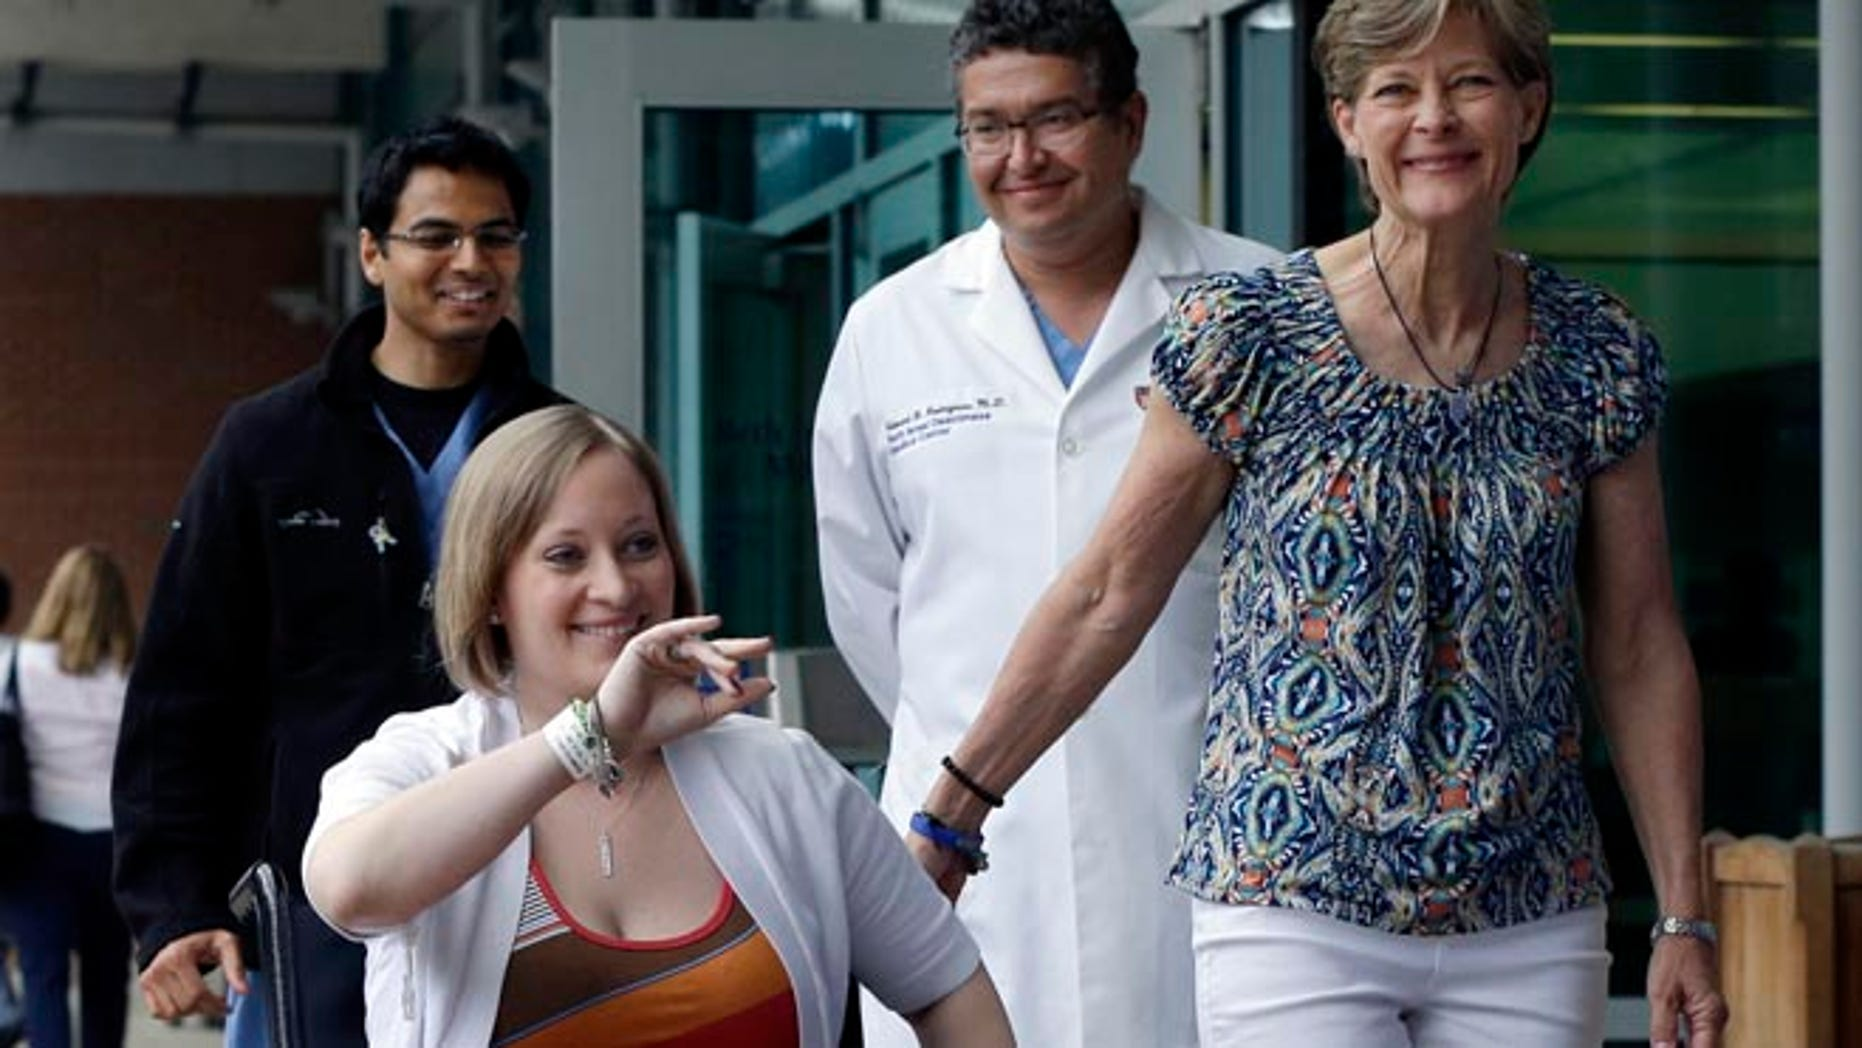 June 3: Erika Brannock, 29, a Baltimore area pre-school teacher who lost a leg in the Boston Marathon bombings, is accompanied by her mother, Carol Downing, right, as she is released from Beth Israel Deaconess Medical Center.